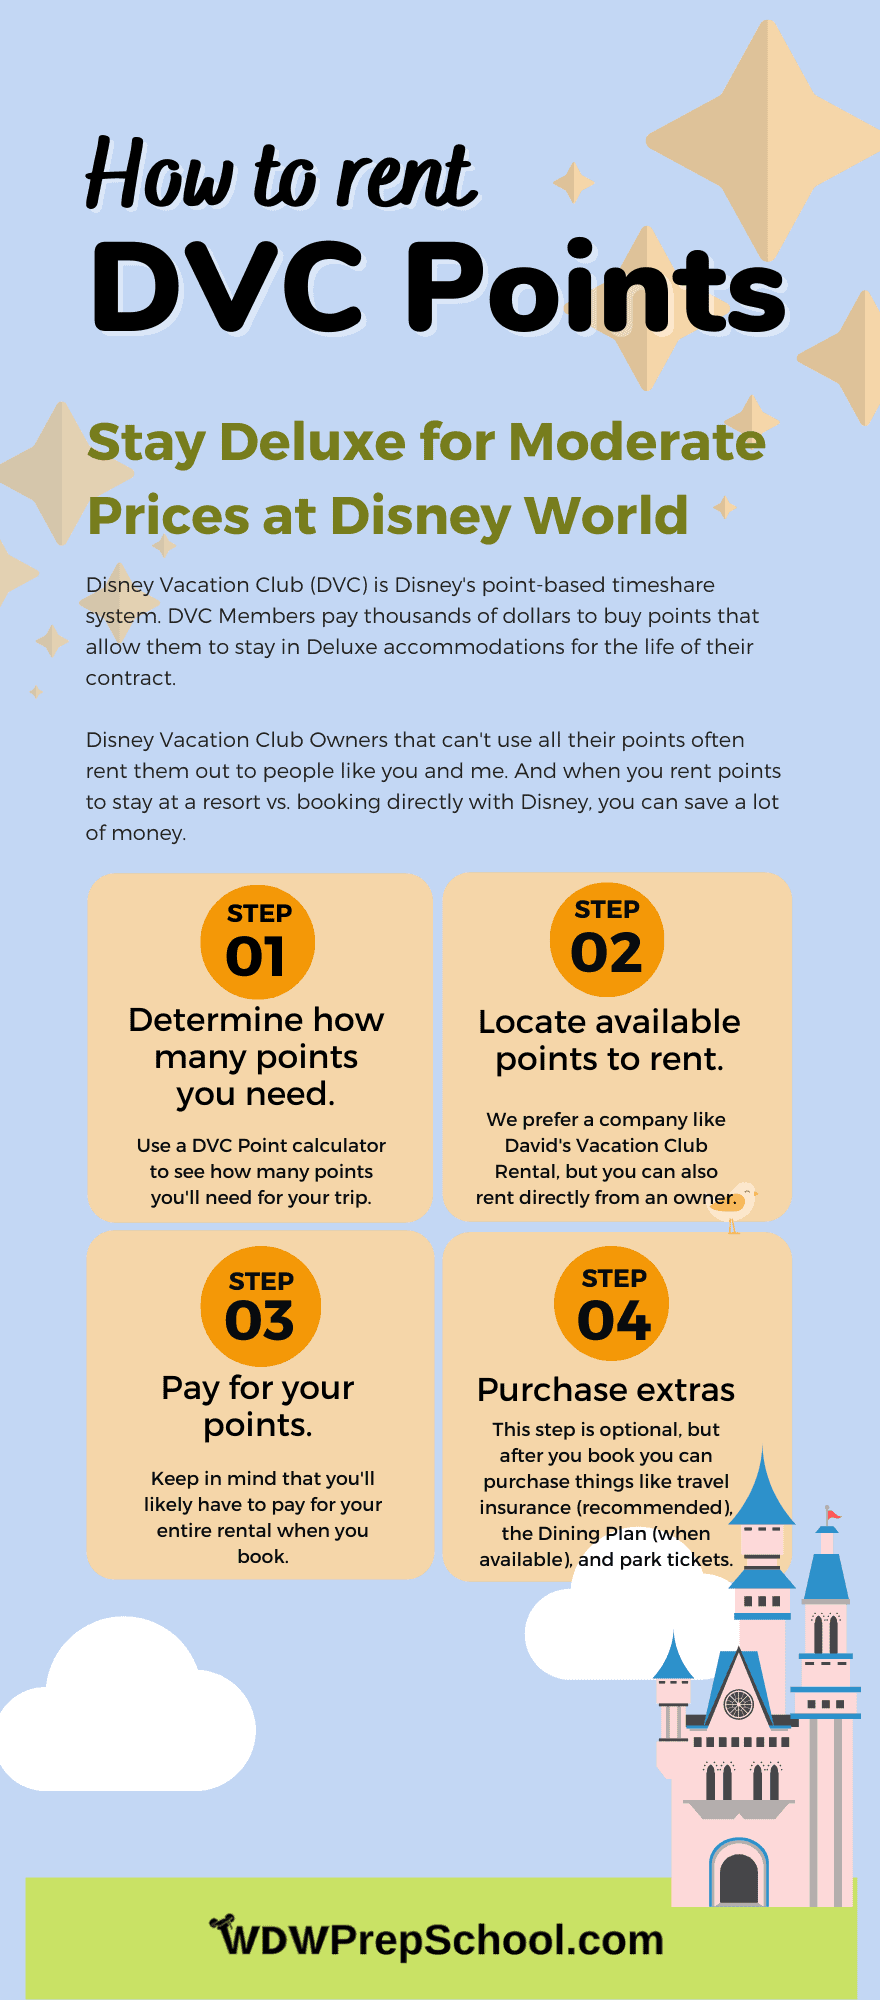 How to Rent DVC Points infographic